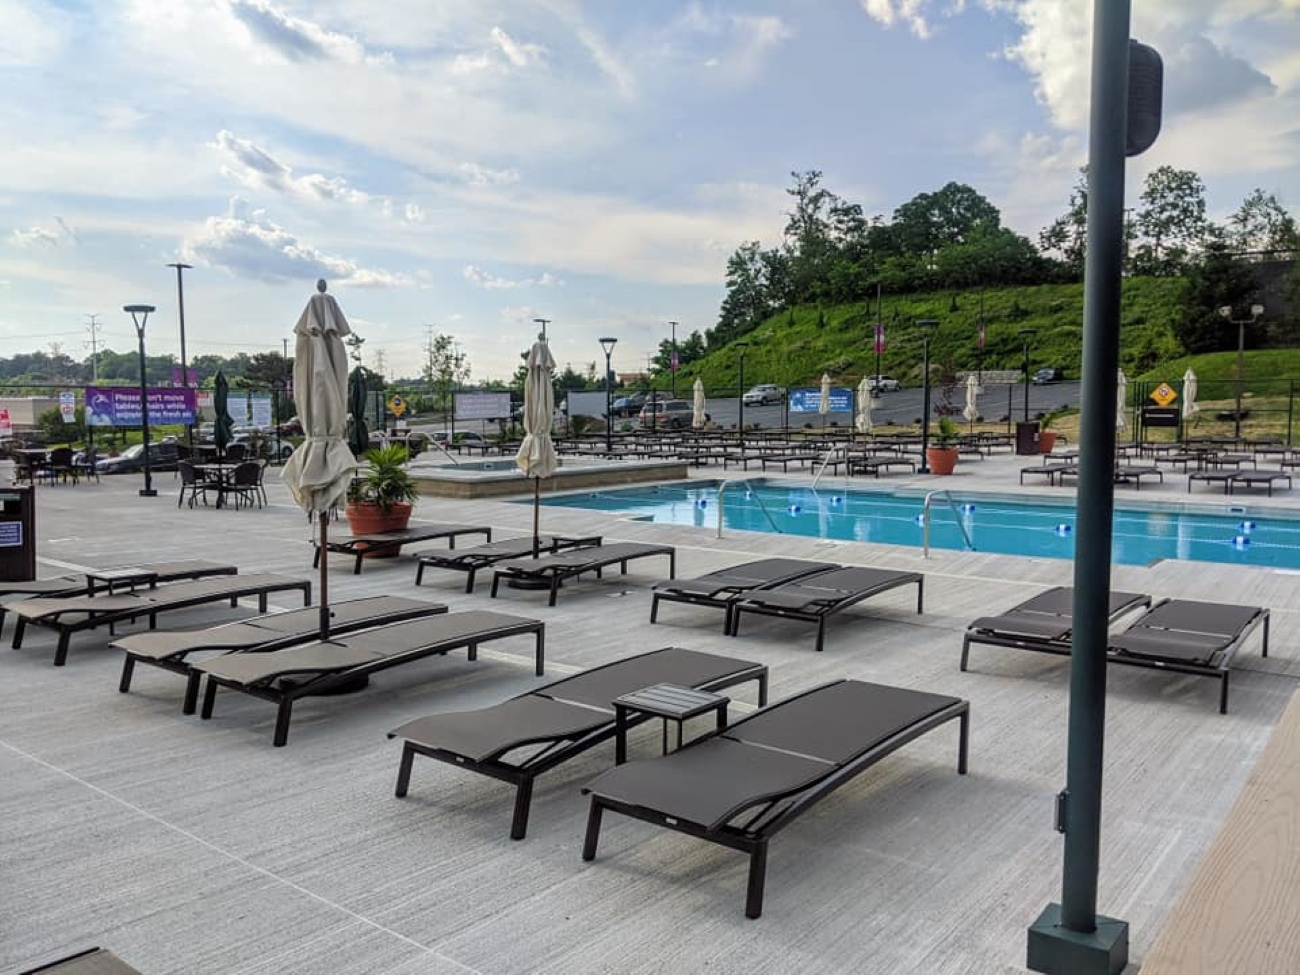 <p>The pool features a poolside bar and café, lounge pool with steps, and an adult-only hot and cool tub. The pool deck can accommodate up to 250 lounge chairs and table and bar seating. / Image courtesy of Cincinnati Sports Club // Published: 6.27.20</p>